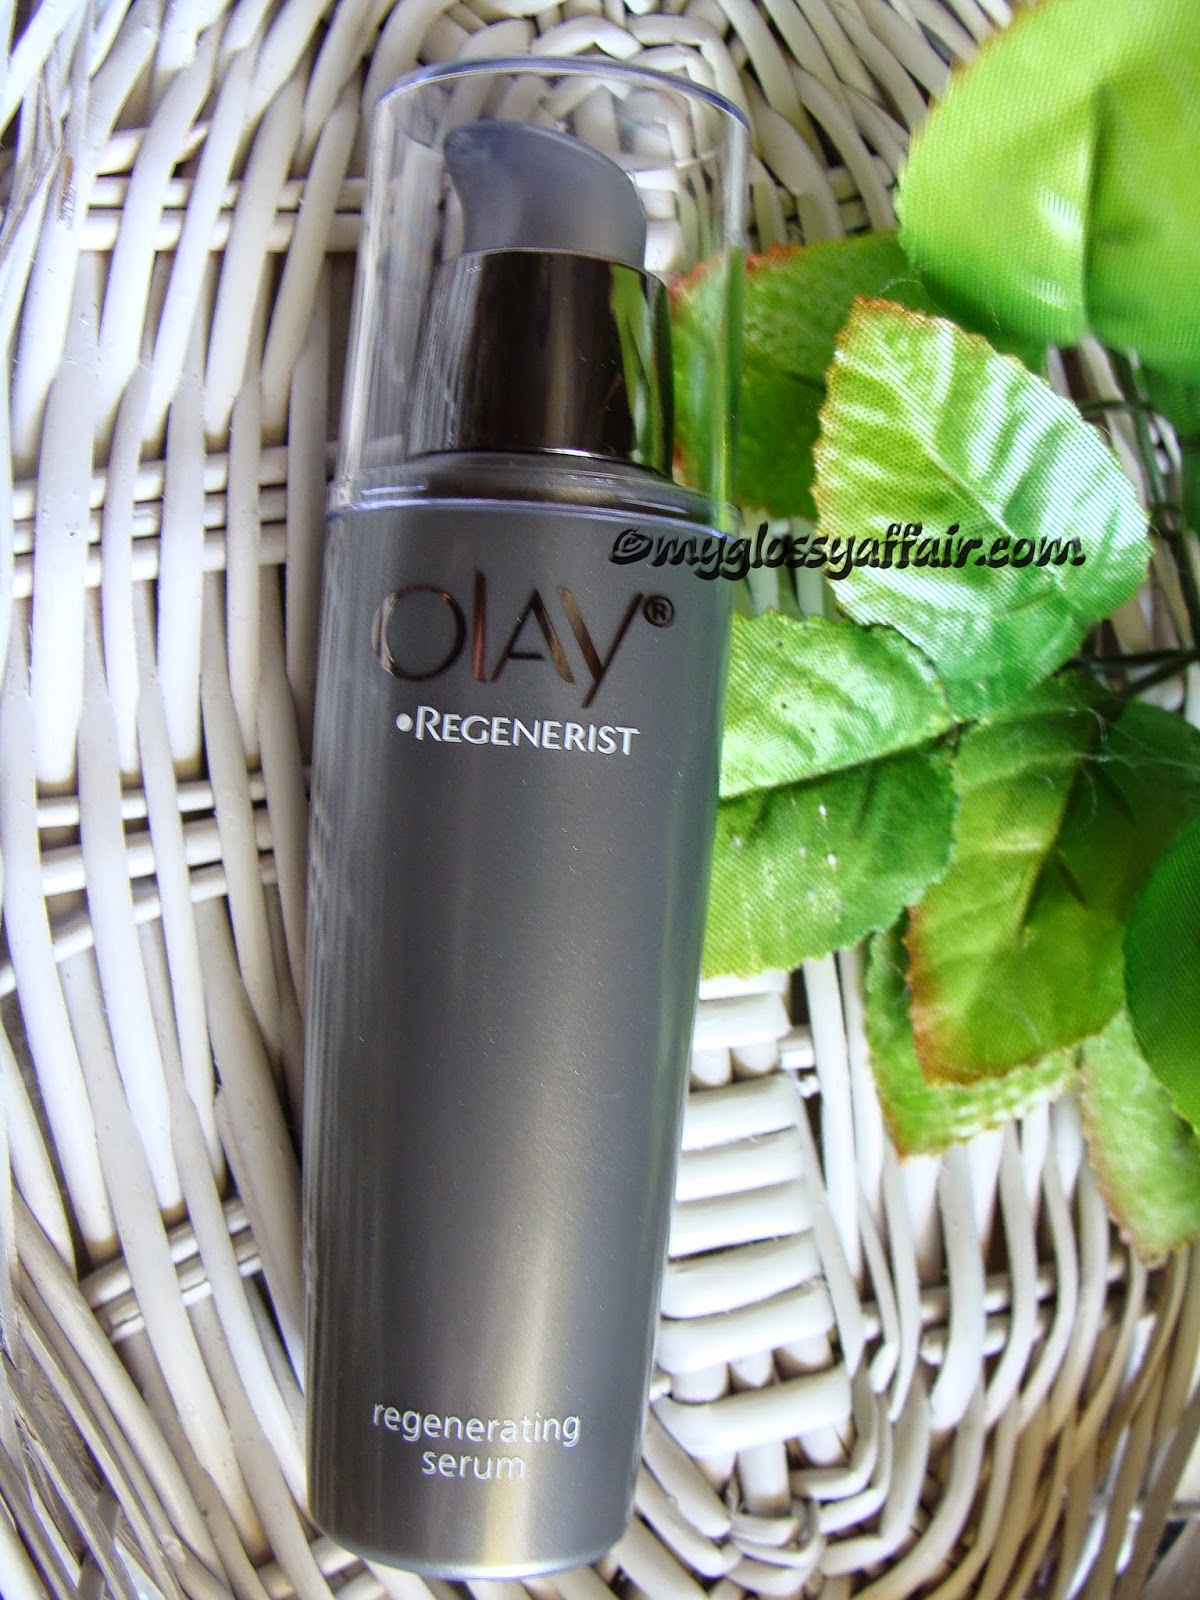 Olay Regenerist Serum Review